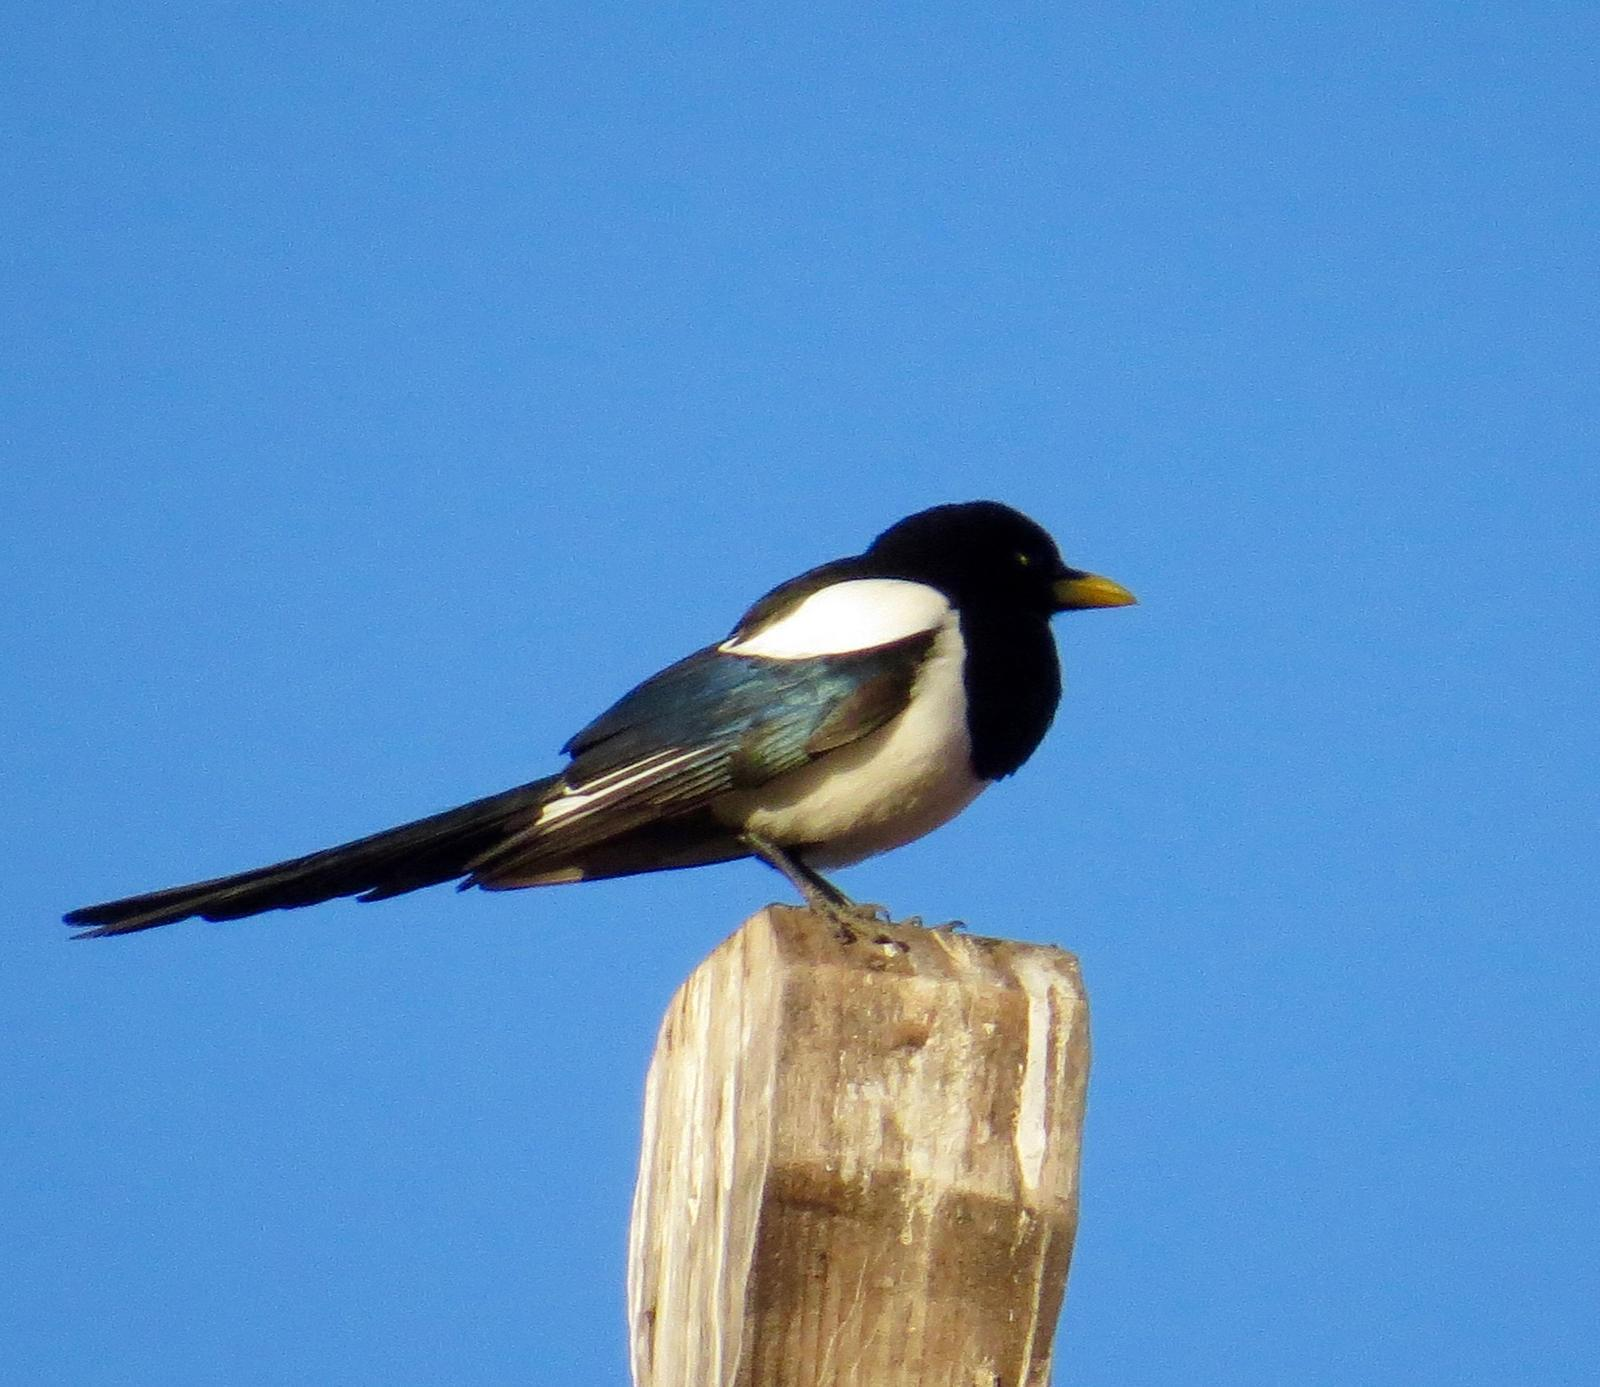 Yellow-billed Magpie Photo by Don Glasco